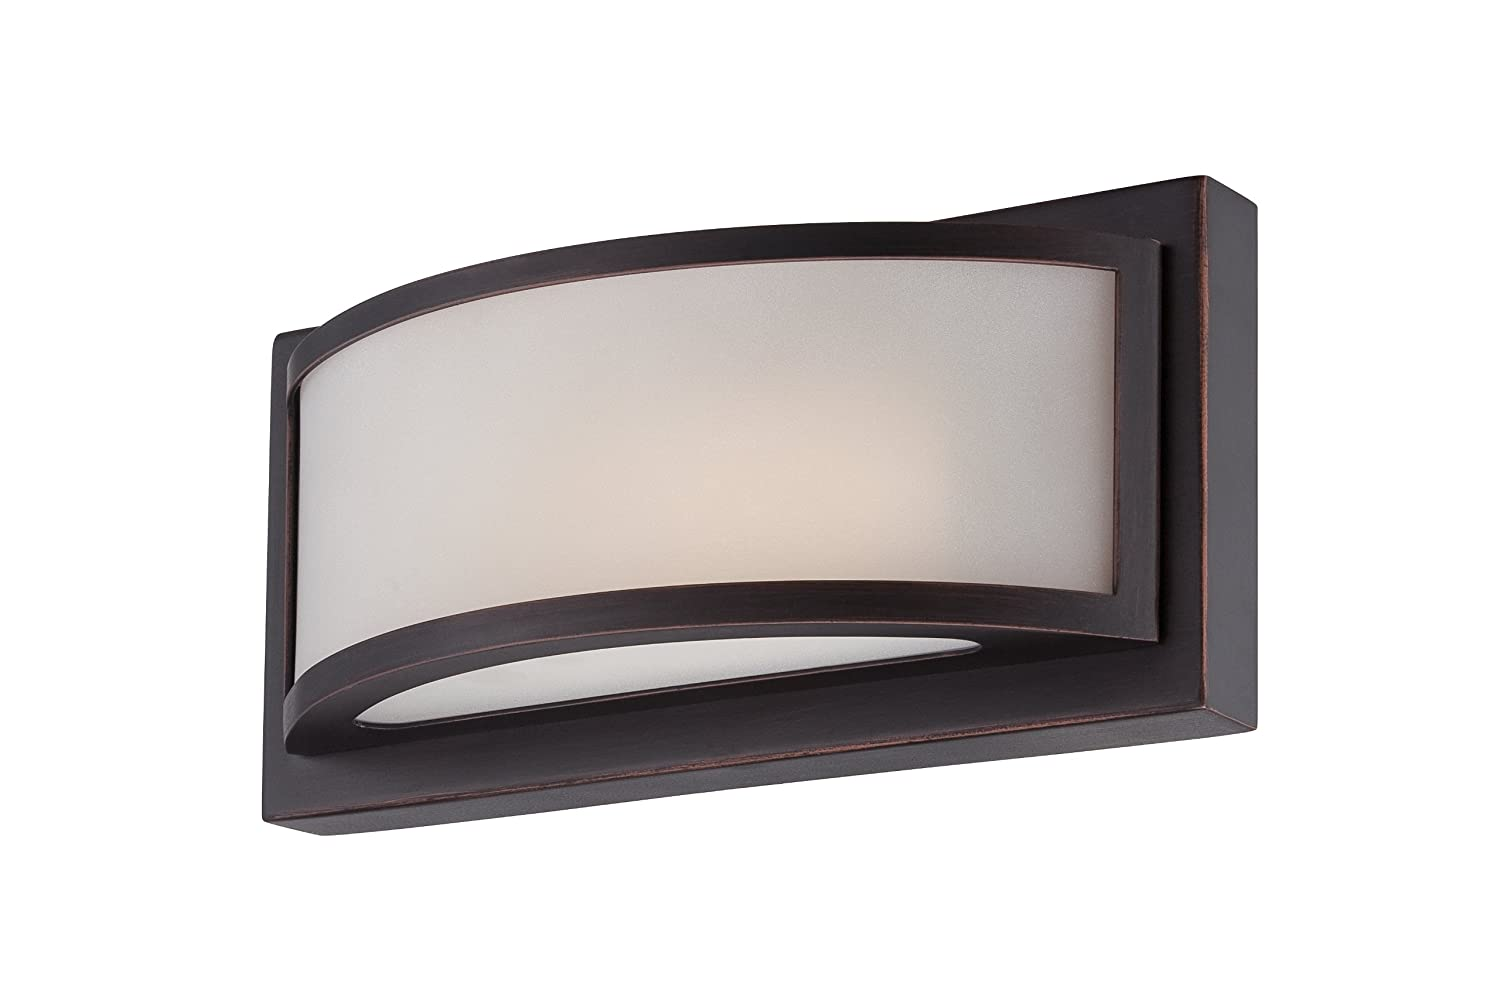 Nuvo Lighting 62 314 Mercer Led One Light Wall Sconce 4 8 Watt 285 Lumens Soft White 2700k Kolourone Technology Frosted Glass Georgetown Bronze Fixture